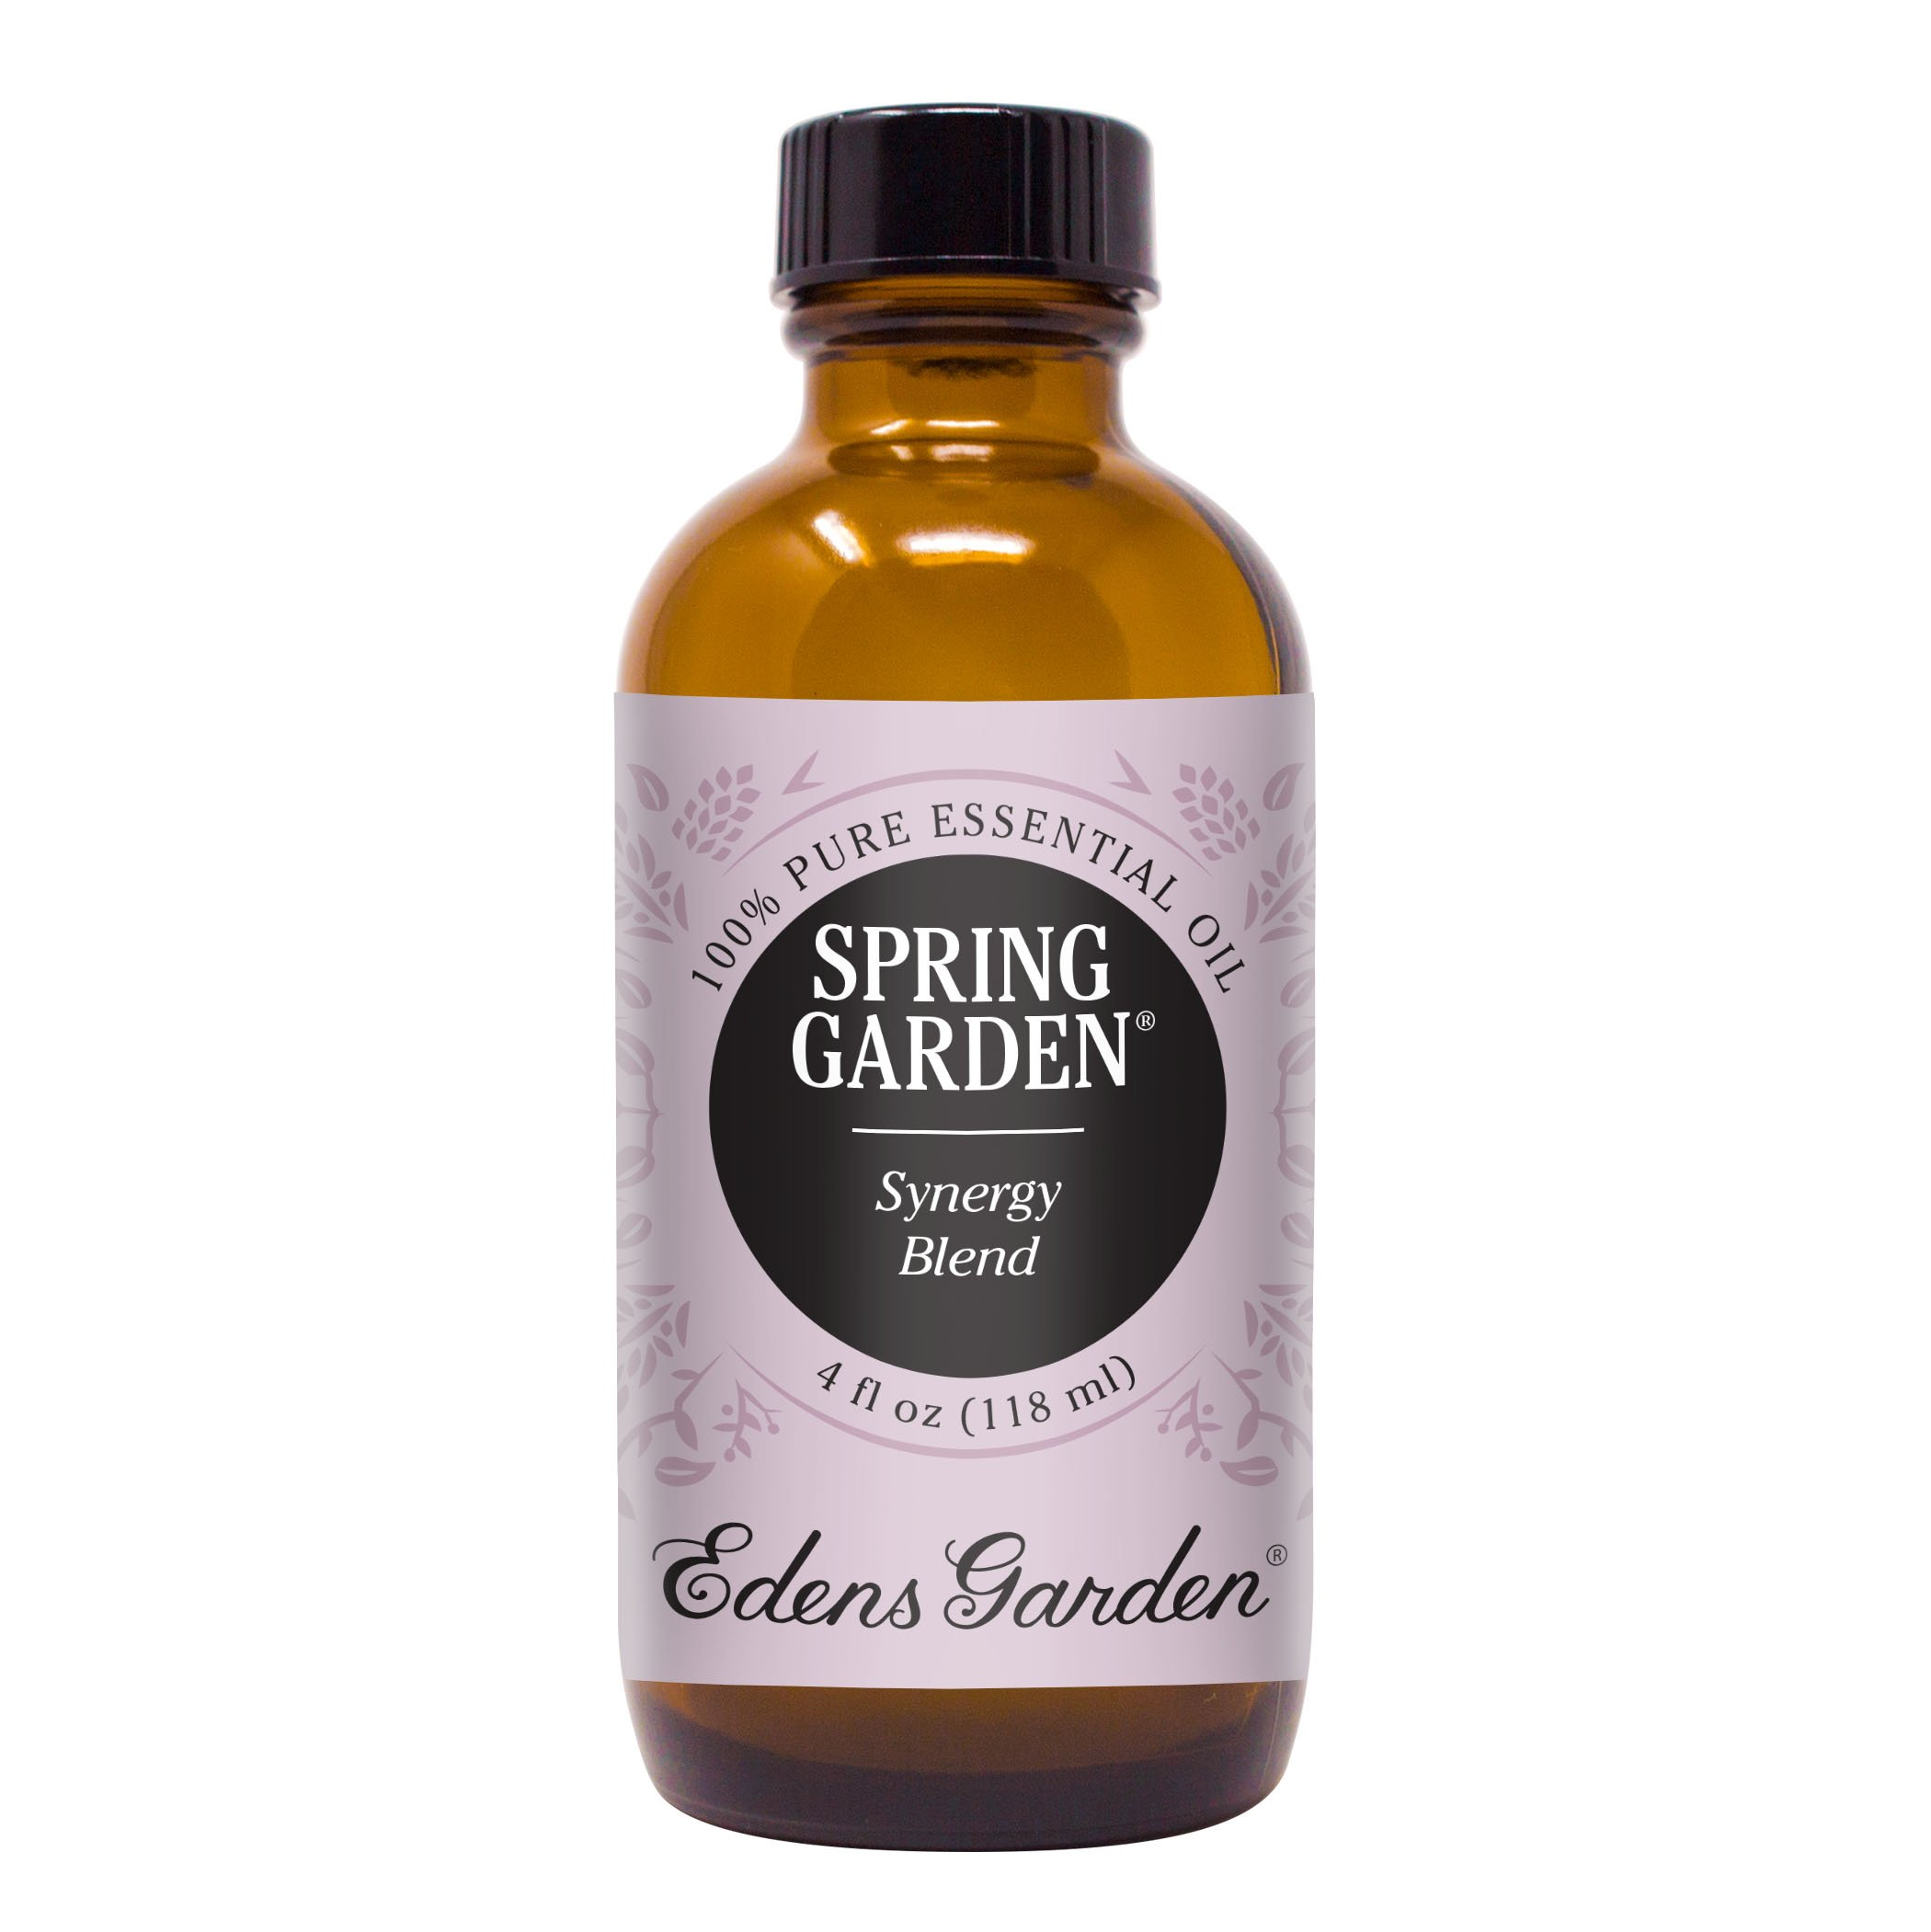 Edens Garden Spring Garden Essential Oil Synergy Blend, 100% Pure Therapeutic Grade (Highest Quality Aromatherapy Oils- Anxiety & Headaches), 4 oz